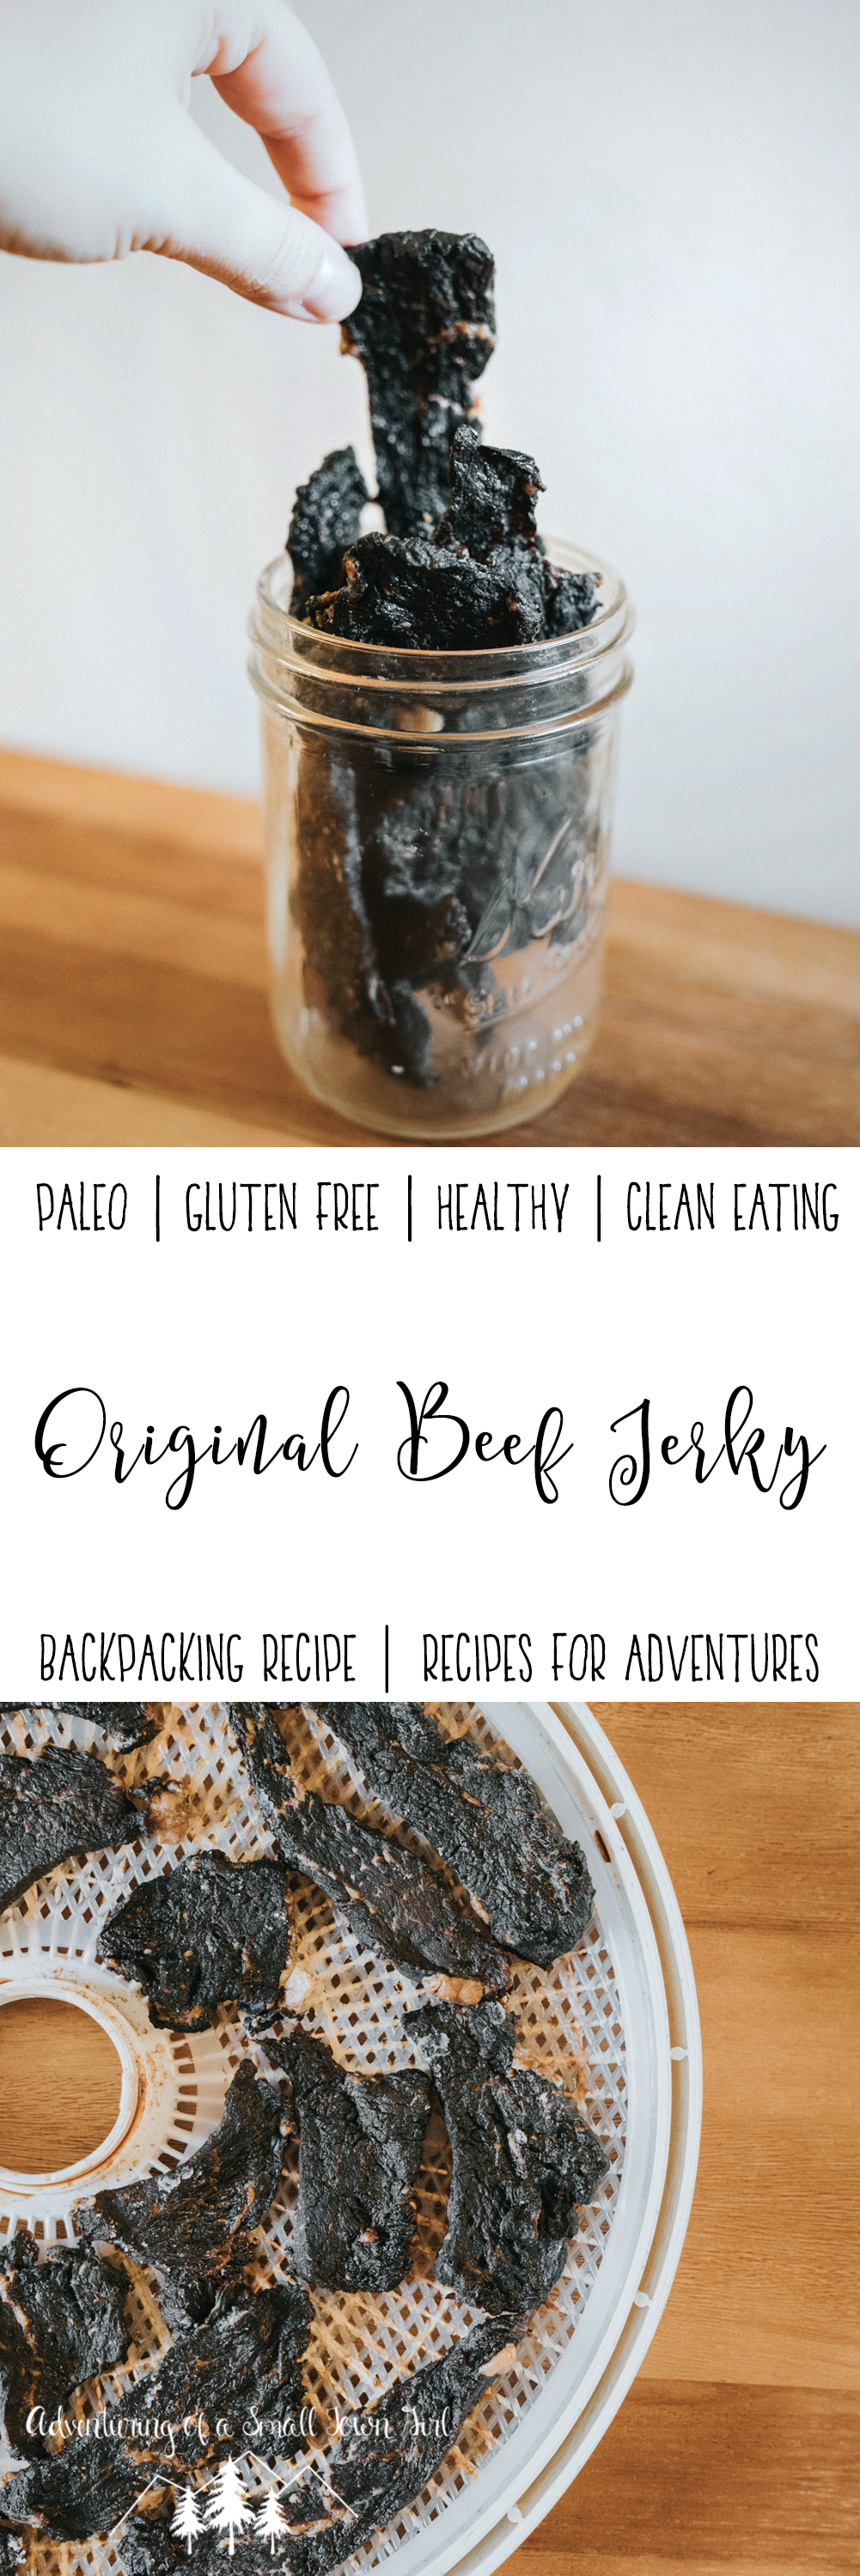 Original Beef Jerky Recipe by Adventuring of a Small Town Girl - Backpacking Recipes - Dehydrator Recipes - Recipes for adventures by ASTG